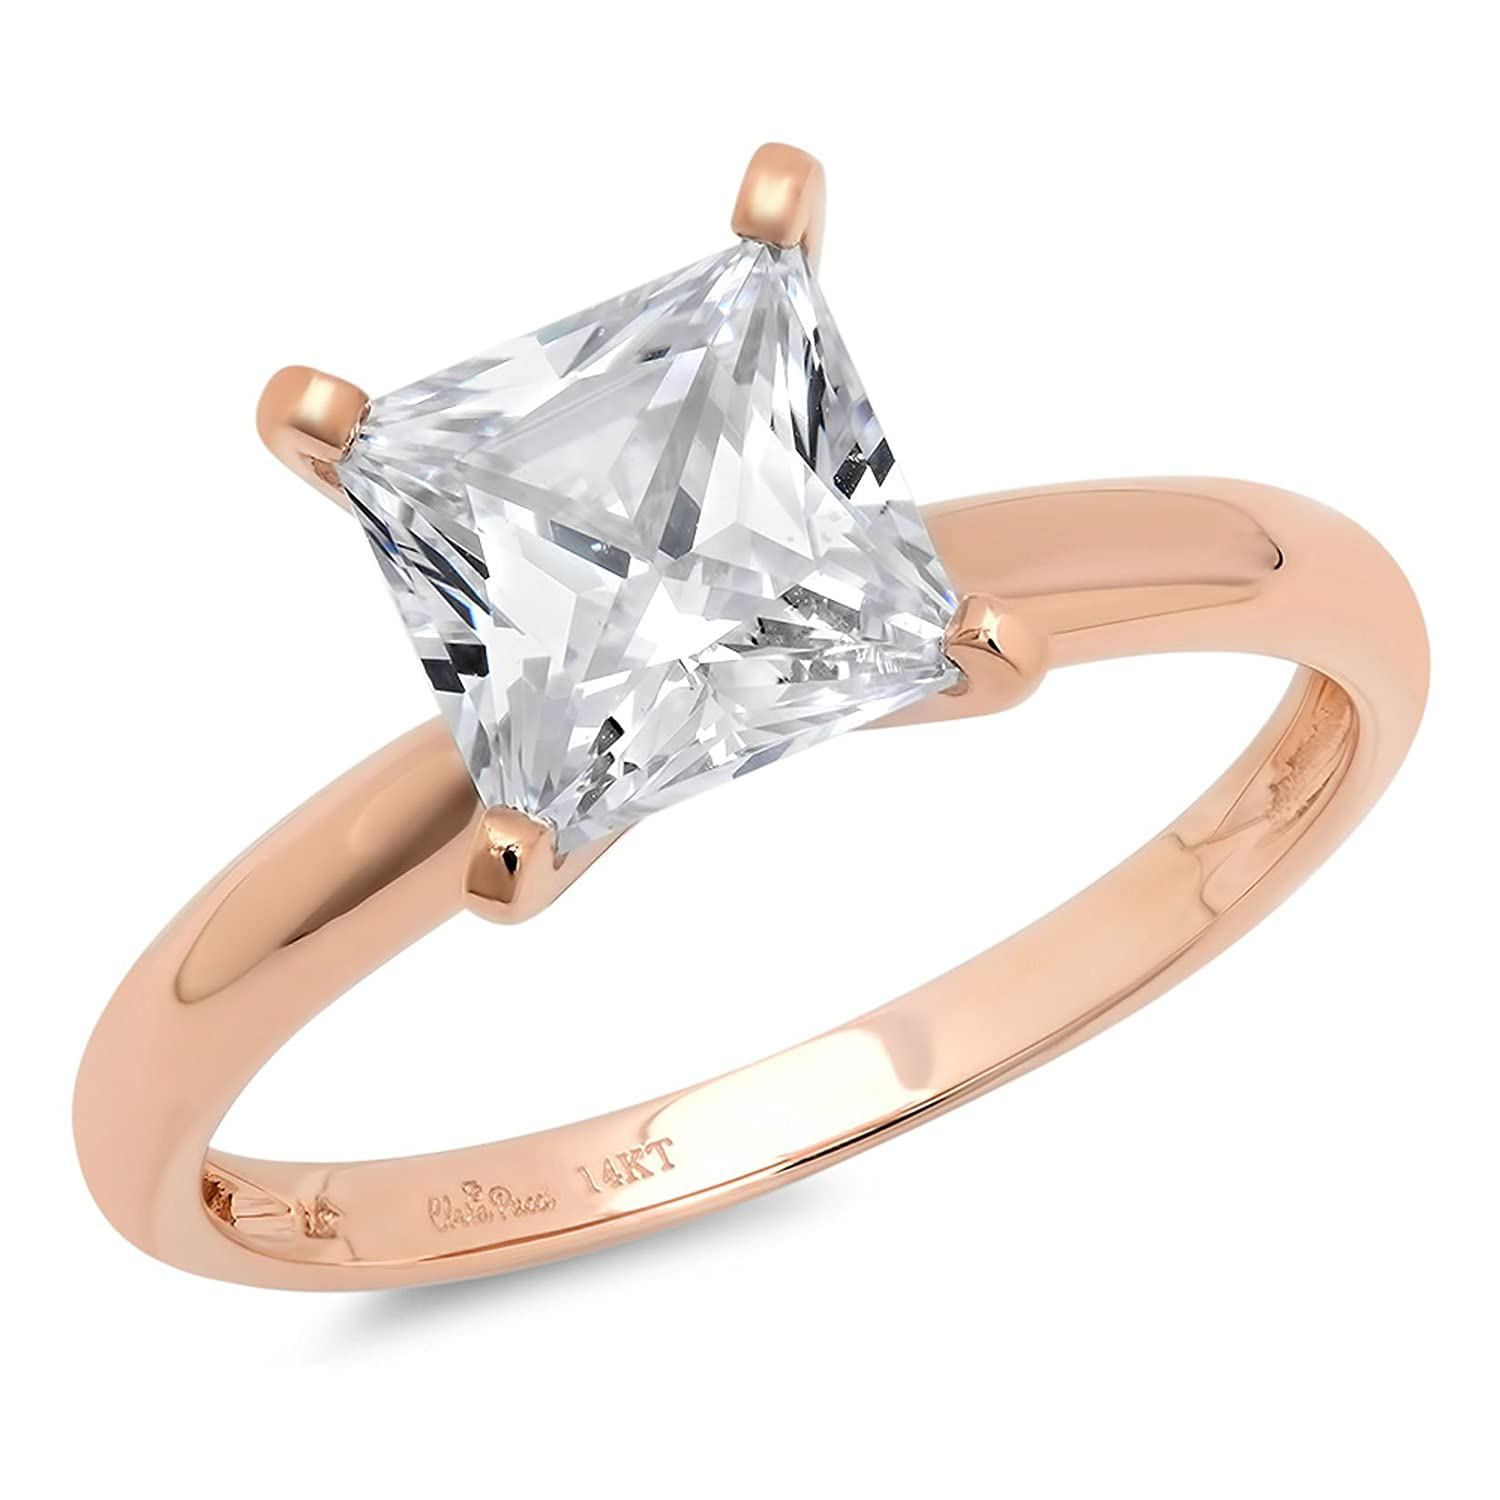 0.4ct Princess Brilliant Cut Classic Wedding Statement Anniversary Designer Bridal Solitaire Engagement Promise Ring Solid 14k Rose Gold, Clara Pucci